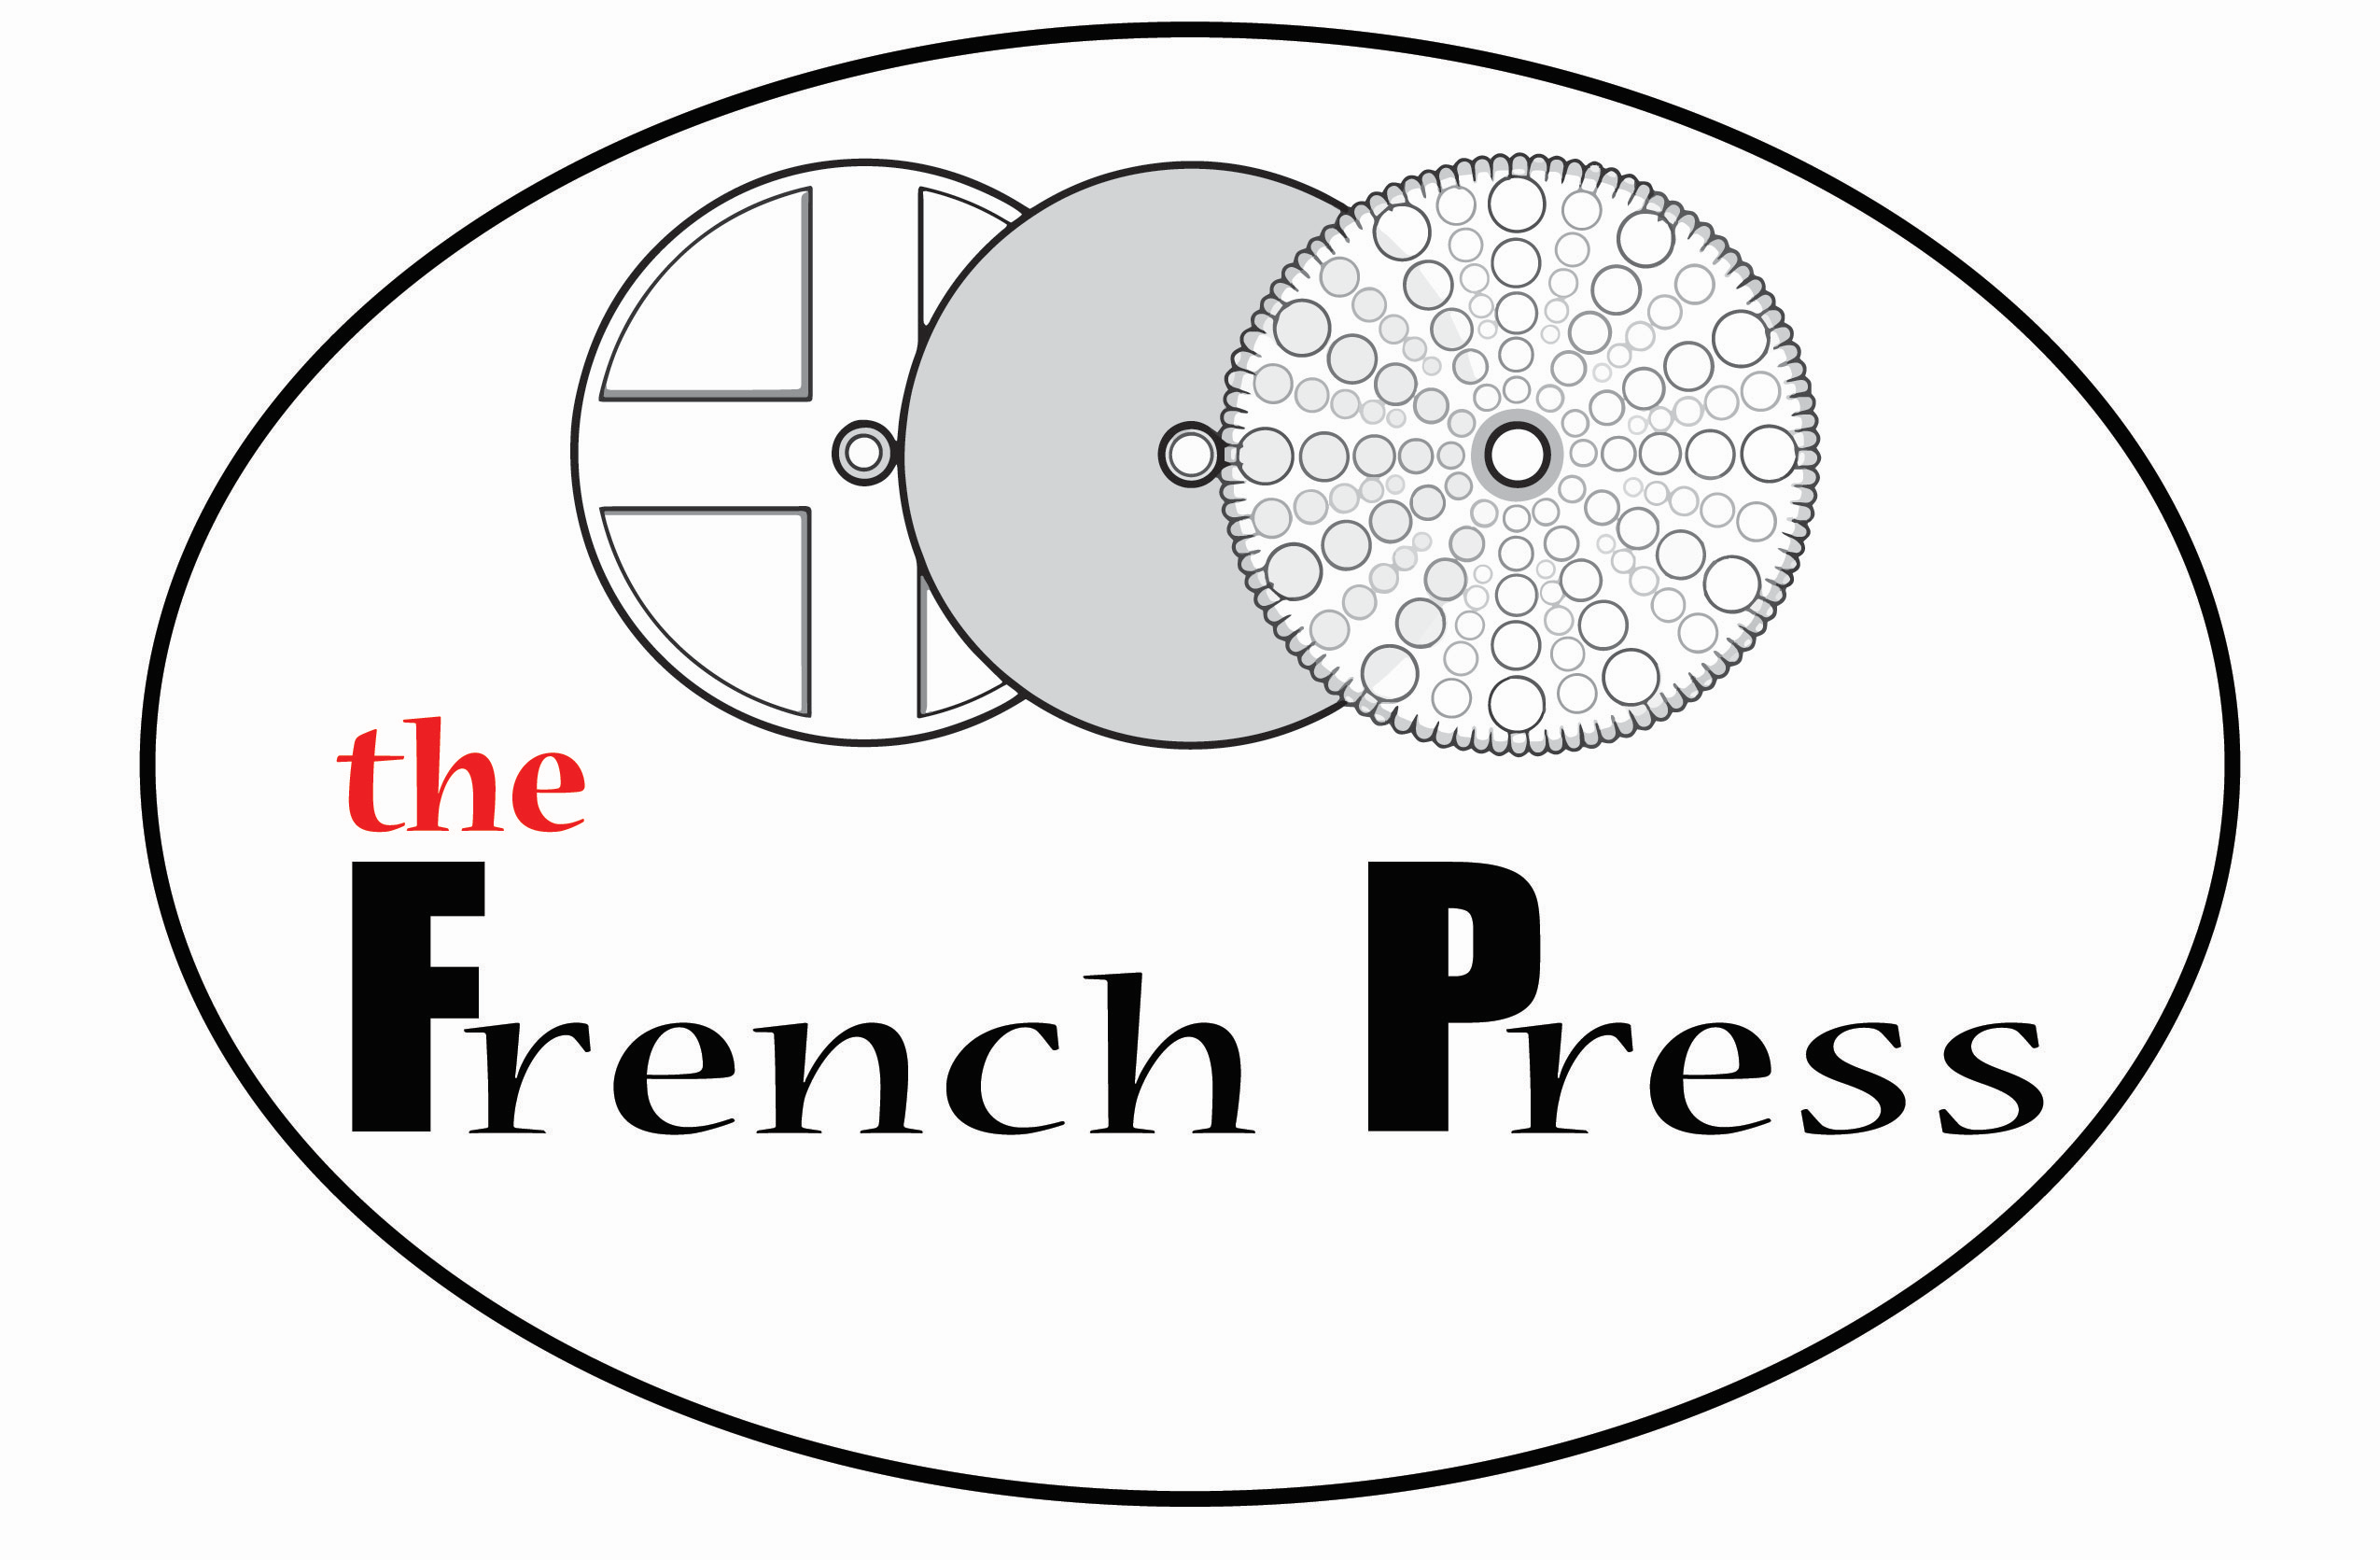 The French Press resolves to brew organic for the new year